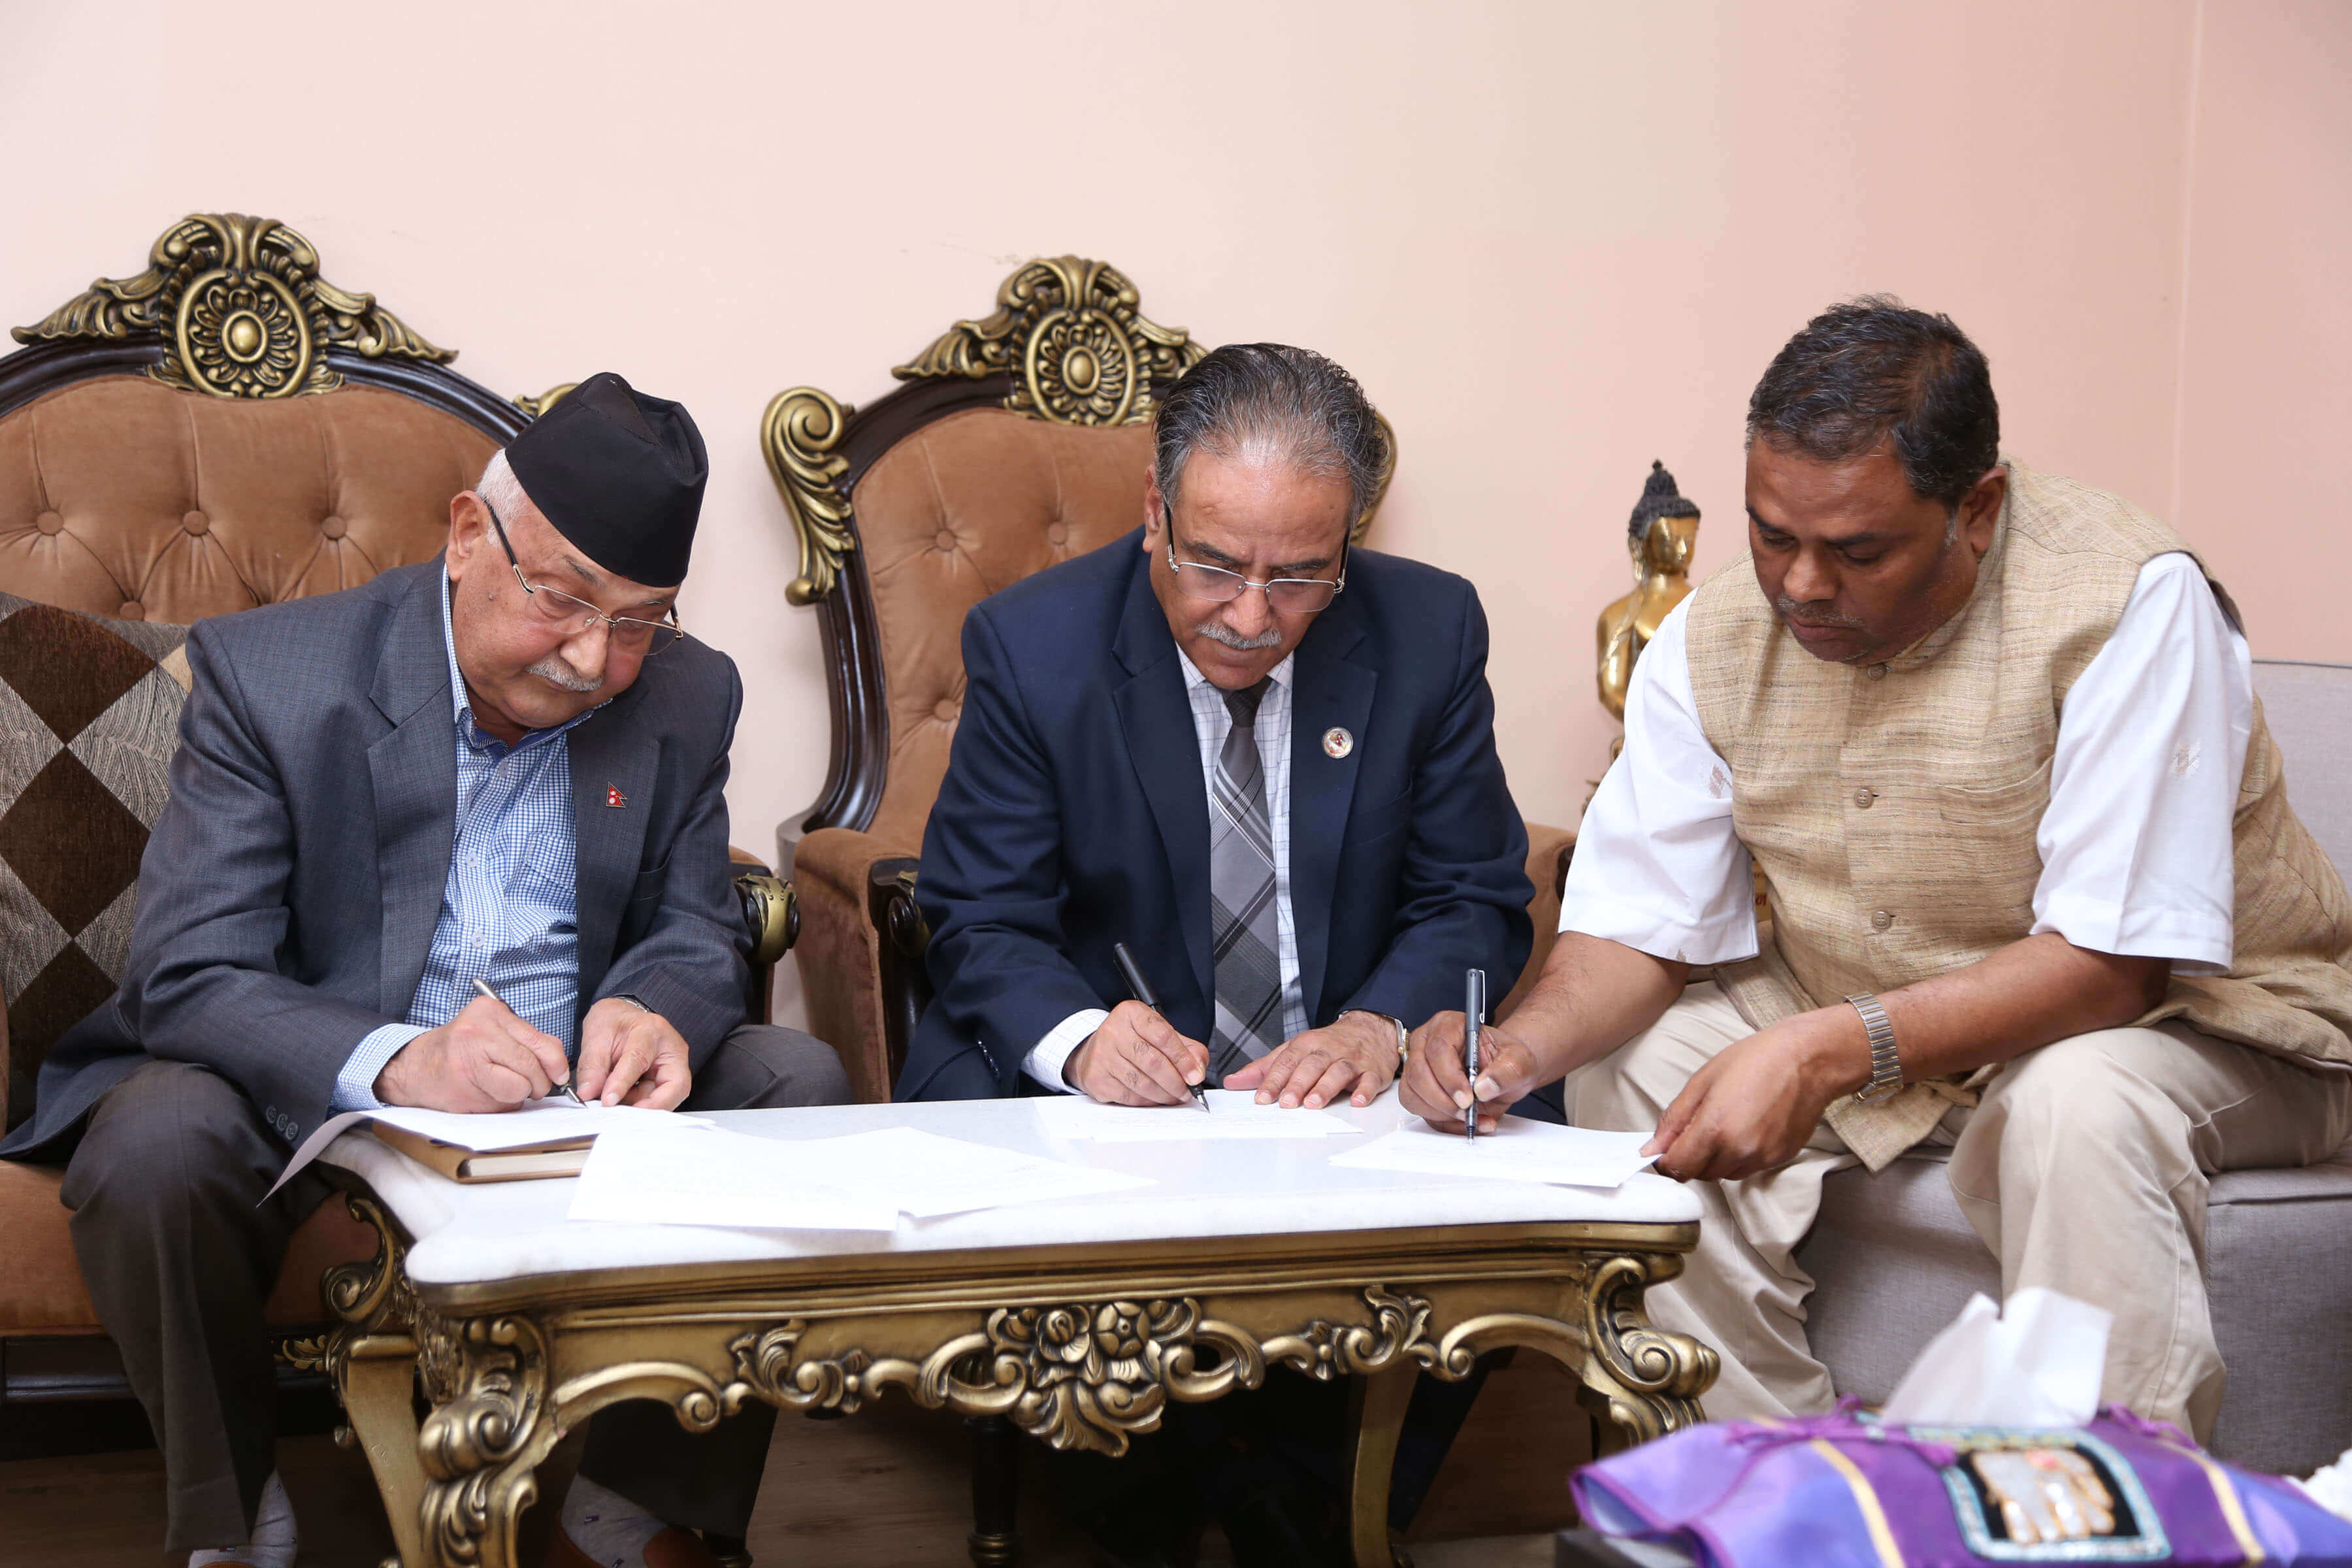 Prime Minister KP Oli, co-chair of Nepal Communist Party Pushpa Kamal Dahal and Upendra Yadav of Sanghiya Samajbadi Forum Nepal (SSFN) sign two-point agreement on Monday. SSFN has decided to join the government following the agreement.